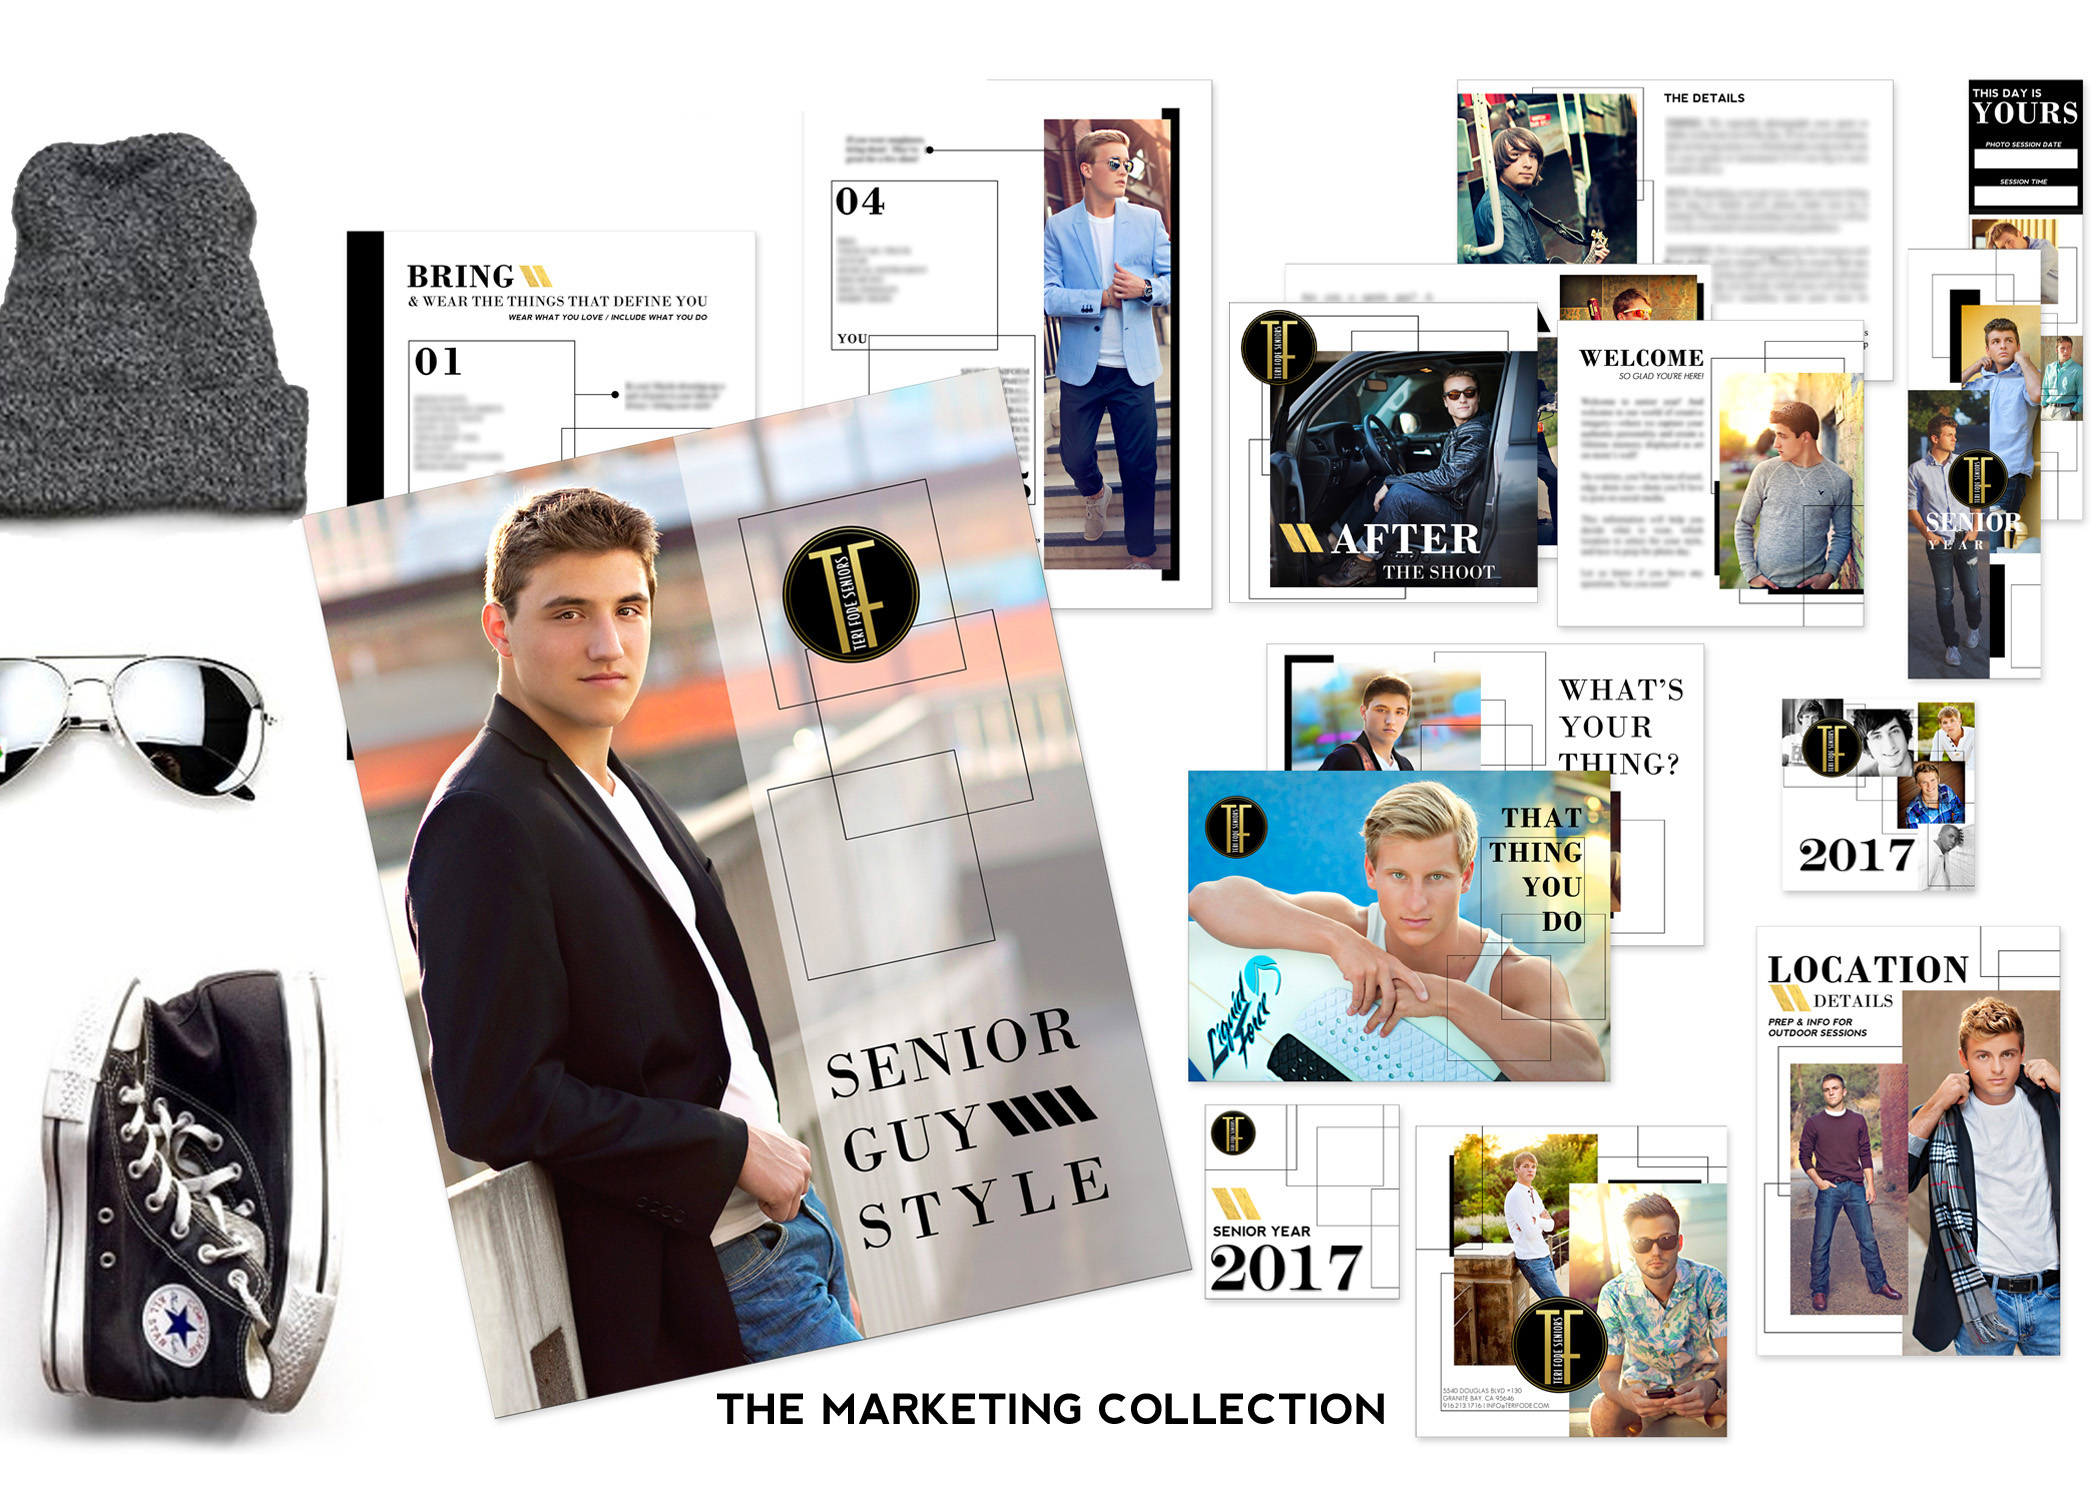 THE SENIOR GUY MARKETING KIT TO USE AT YOUR CONSULTATION OR TO SEND AFTER A PHONE CONSULT